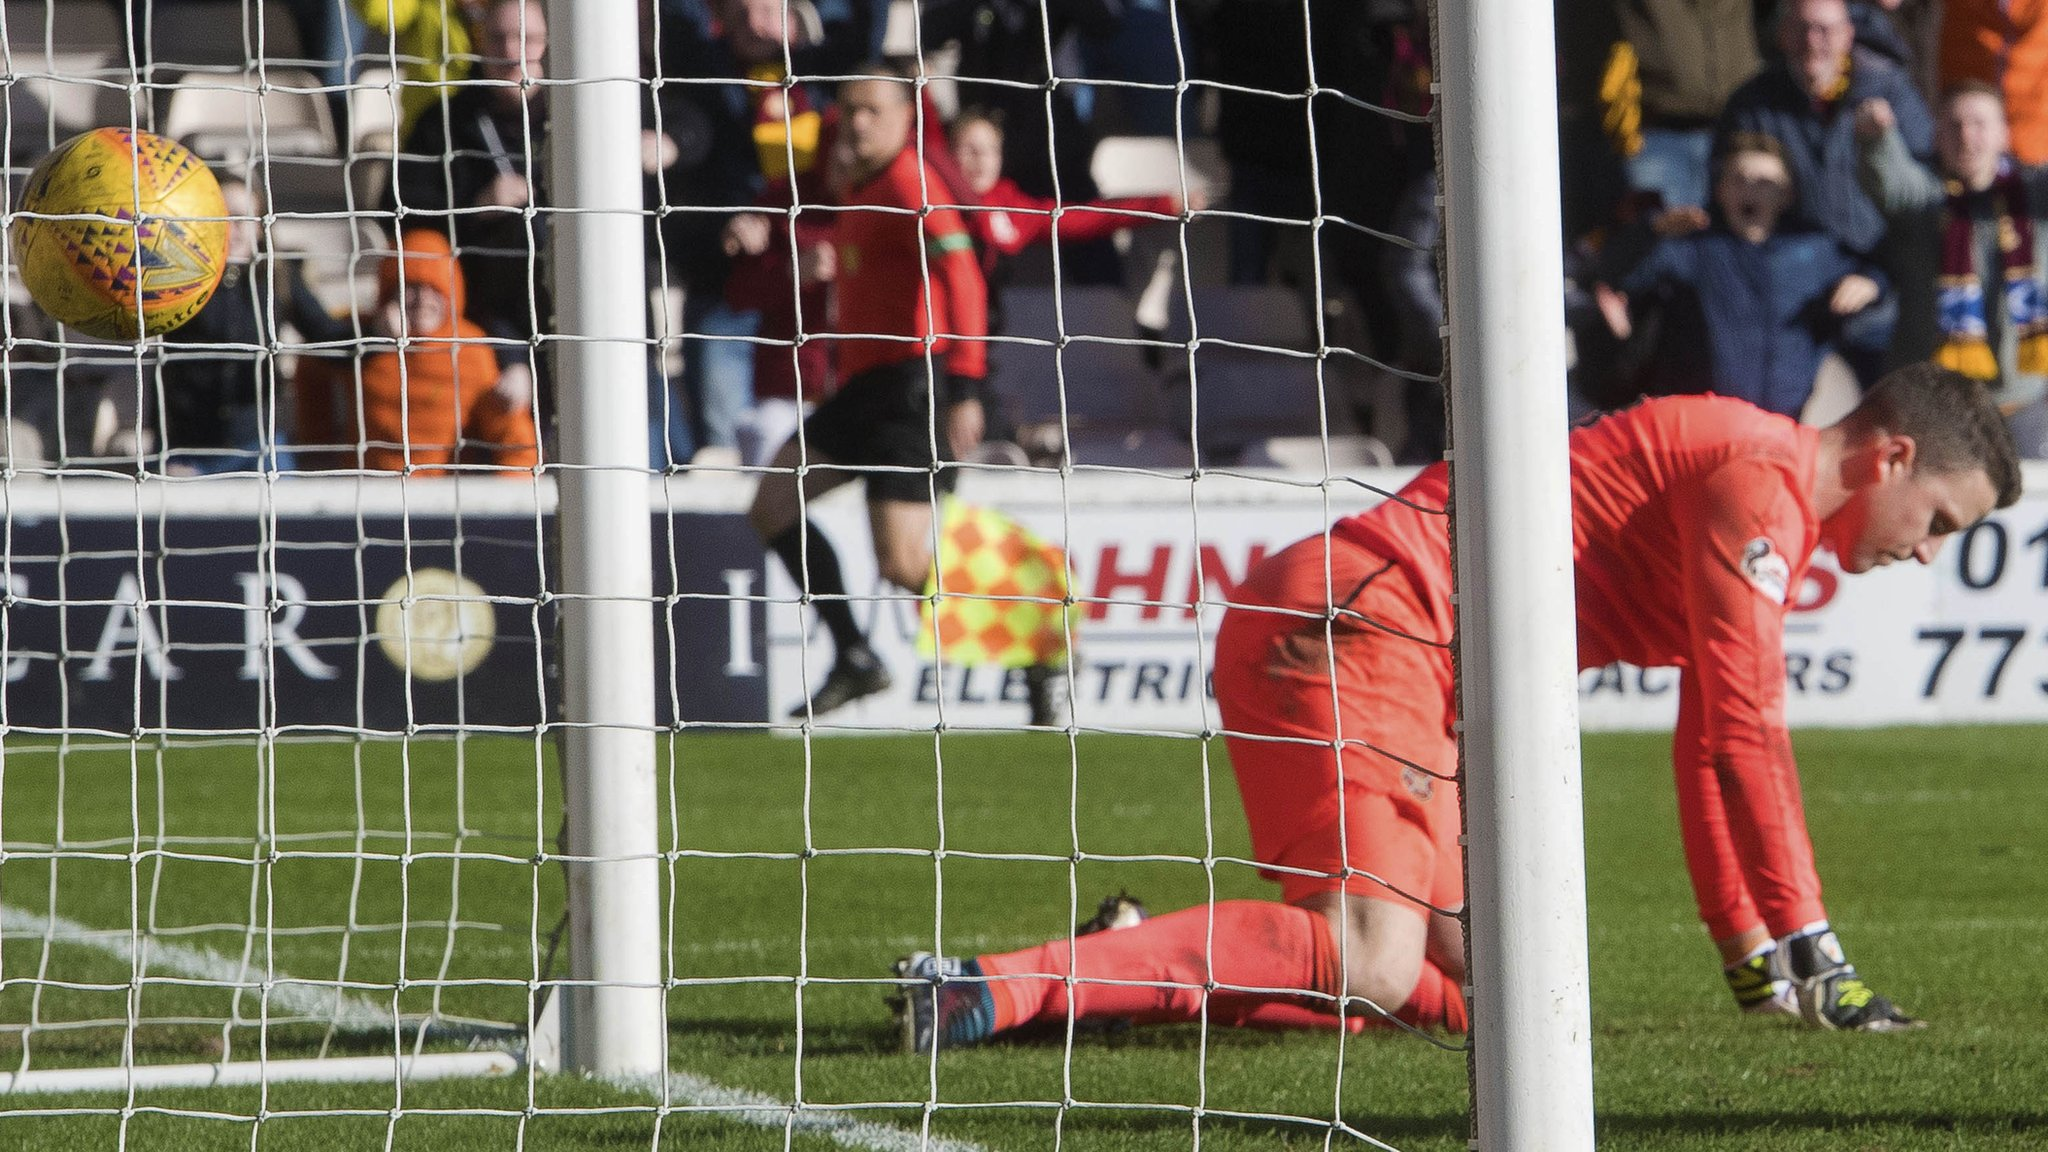 Motherwell extend winning run after howler by Hearts keeper Doyle